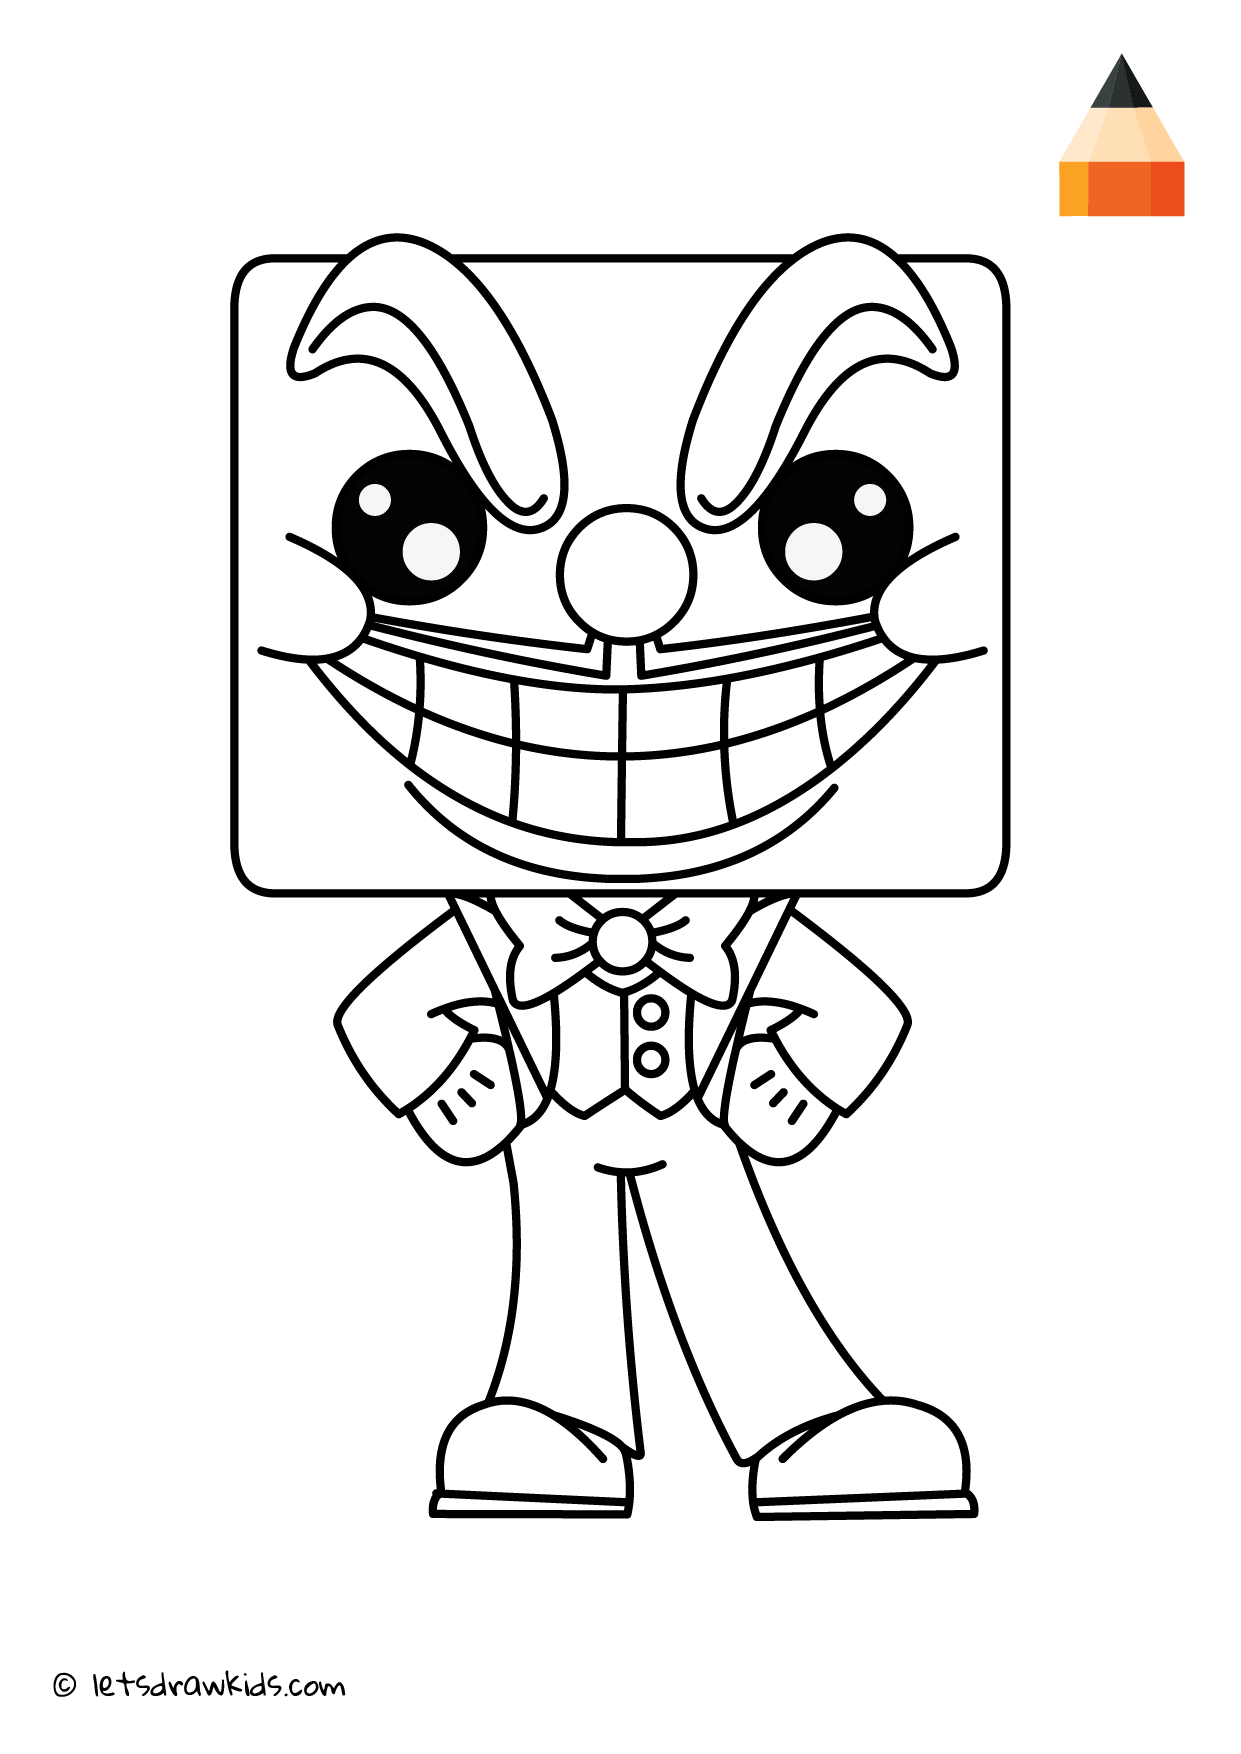 Coloring Page - King Dice Chibi  Grinch coloring pages, Cartoon